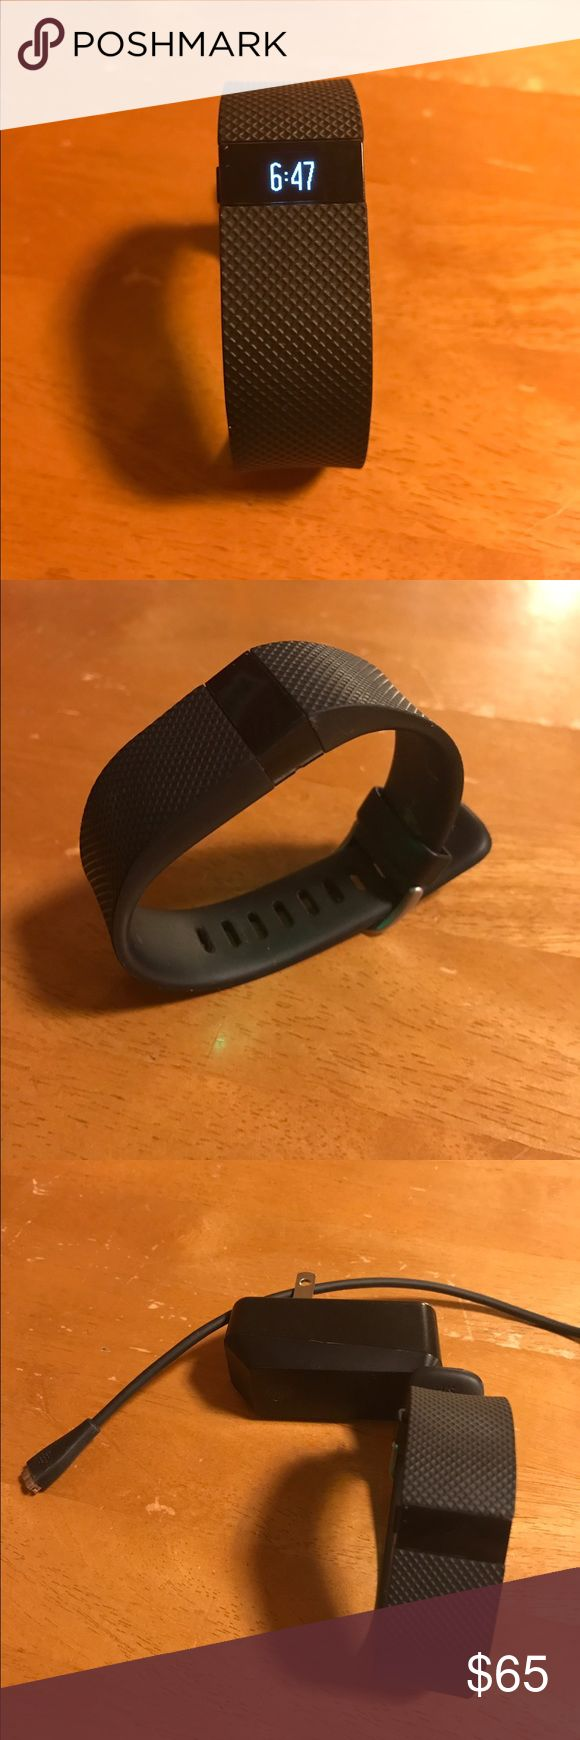 Fitbit Charge HR PRICE FIRM - Excellent working condition, just upgraded to a newer version. Tracks heart rate, calories, steps, flights climbed, and distance. Can also log workouts (manually or auto detect) and notifies of incoming calls. Battery lasts approximately 4 days with normal activity. Size small (5.5 - 6.7 in wrist) Fitbit Accessories Watches